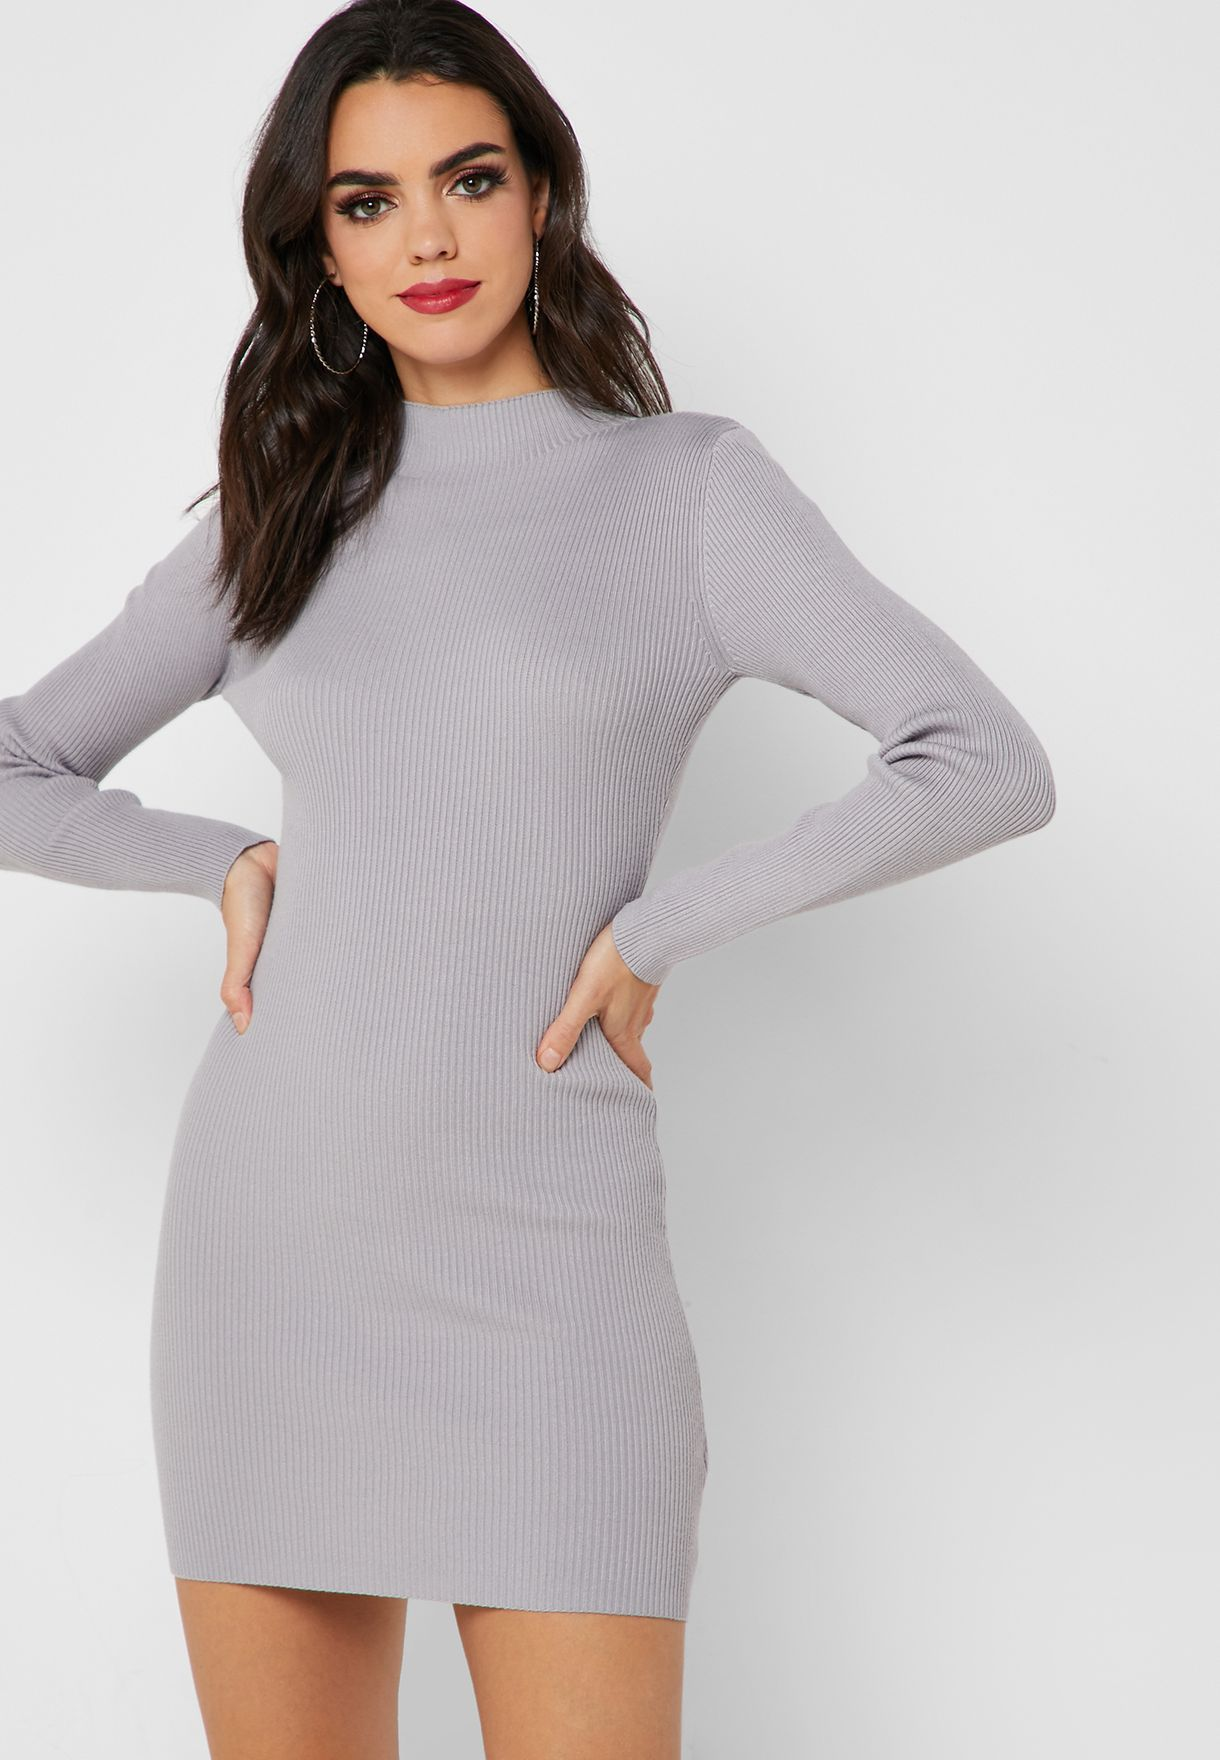 596c9901f5bd6 Shop Missguided grey High Neck Bodycon Dress K2228807 for Women in ...